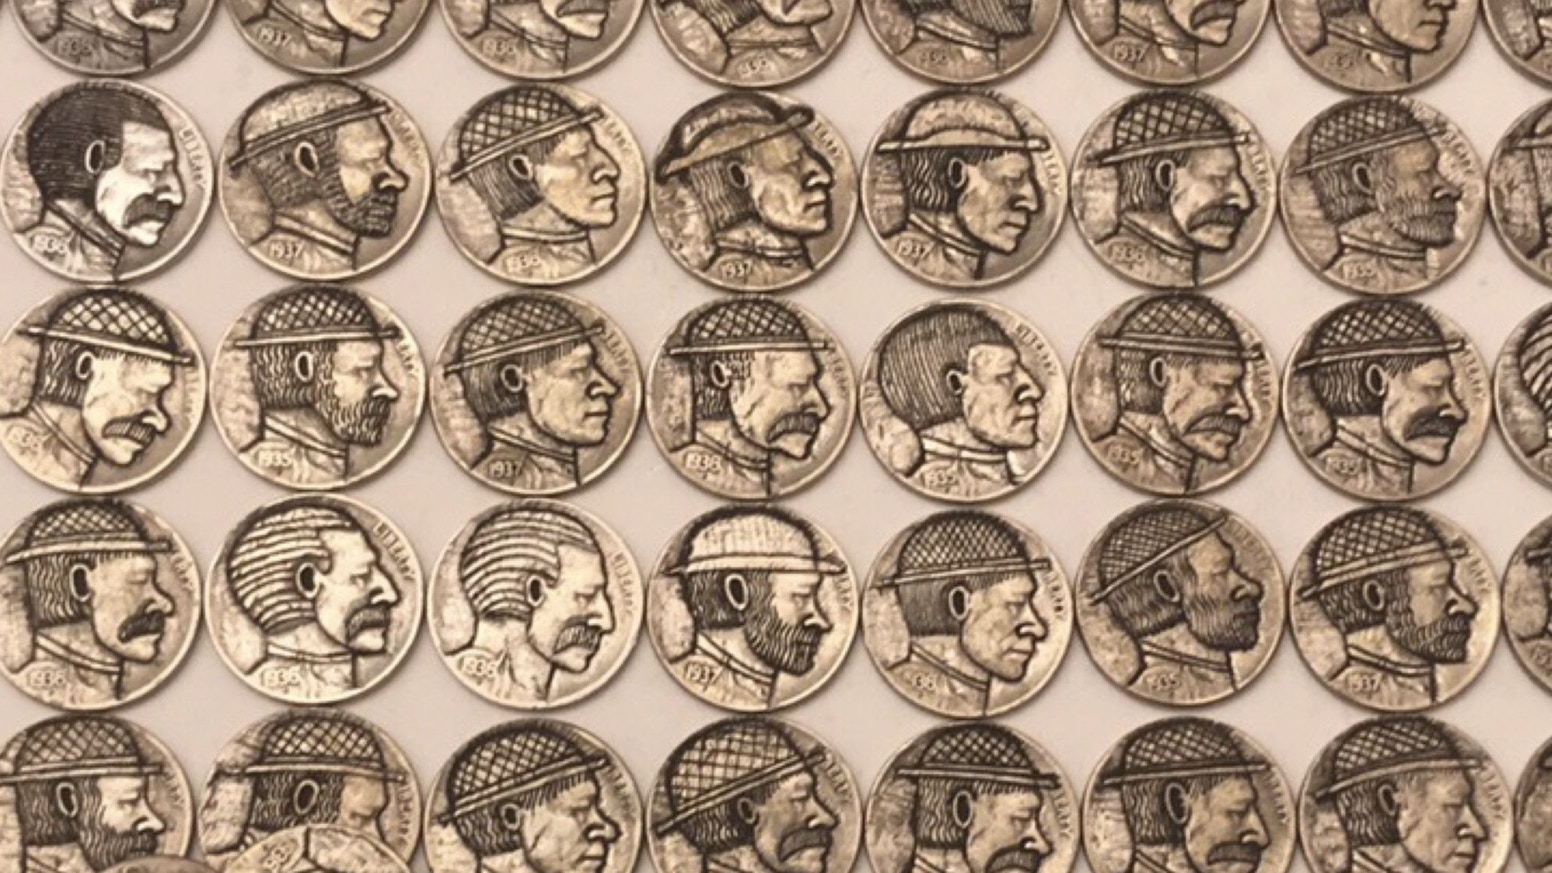 HAND CARVED HOBO NICKELS CARVED INTO OLD BUFFALO NICKELS by